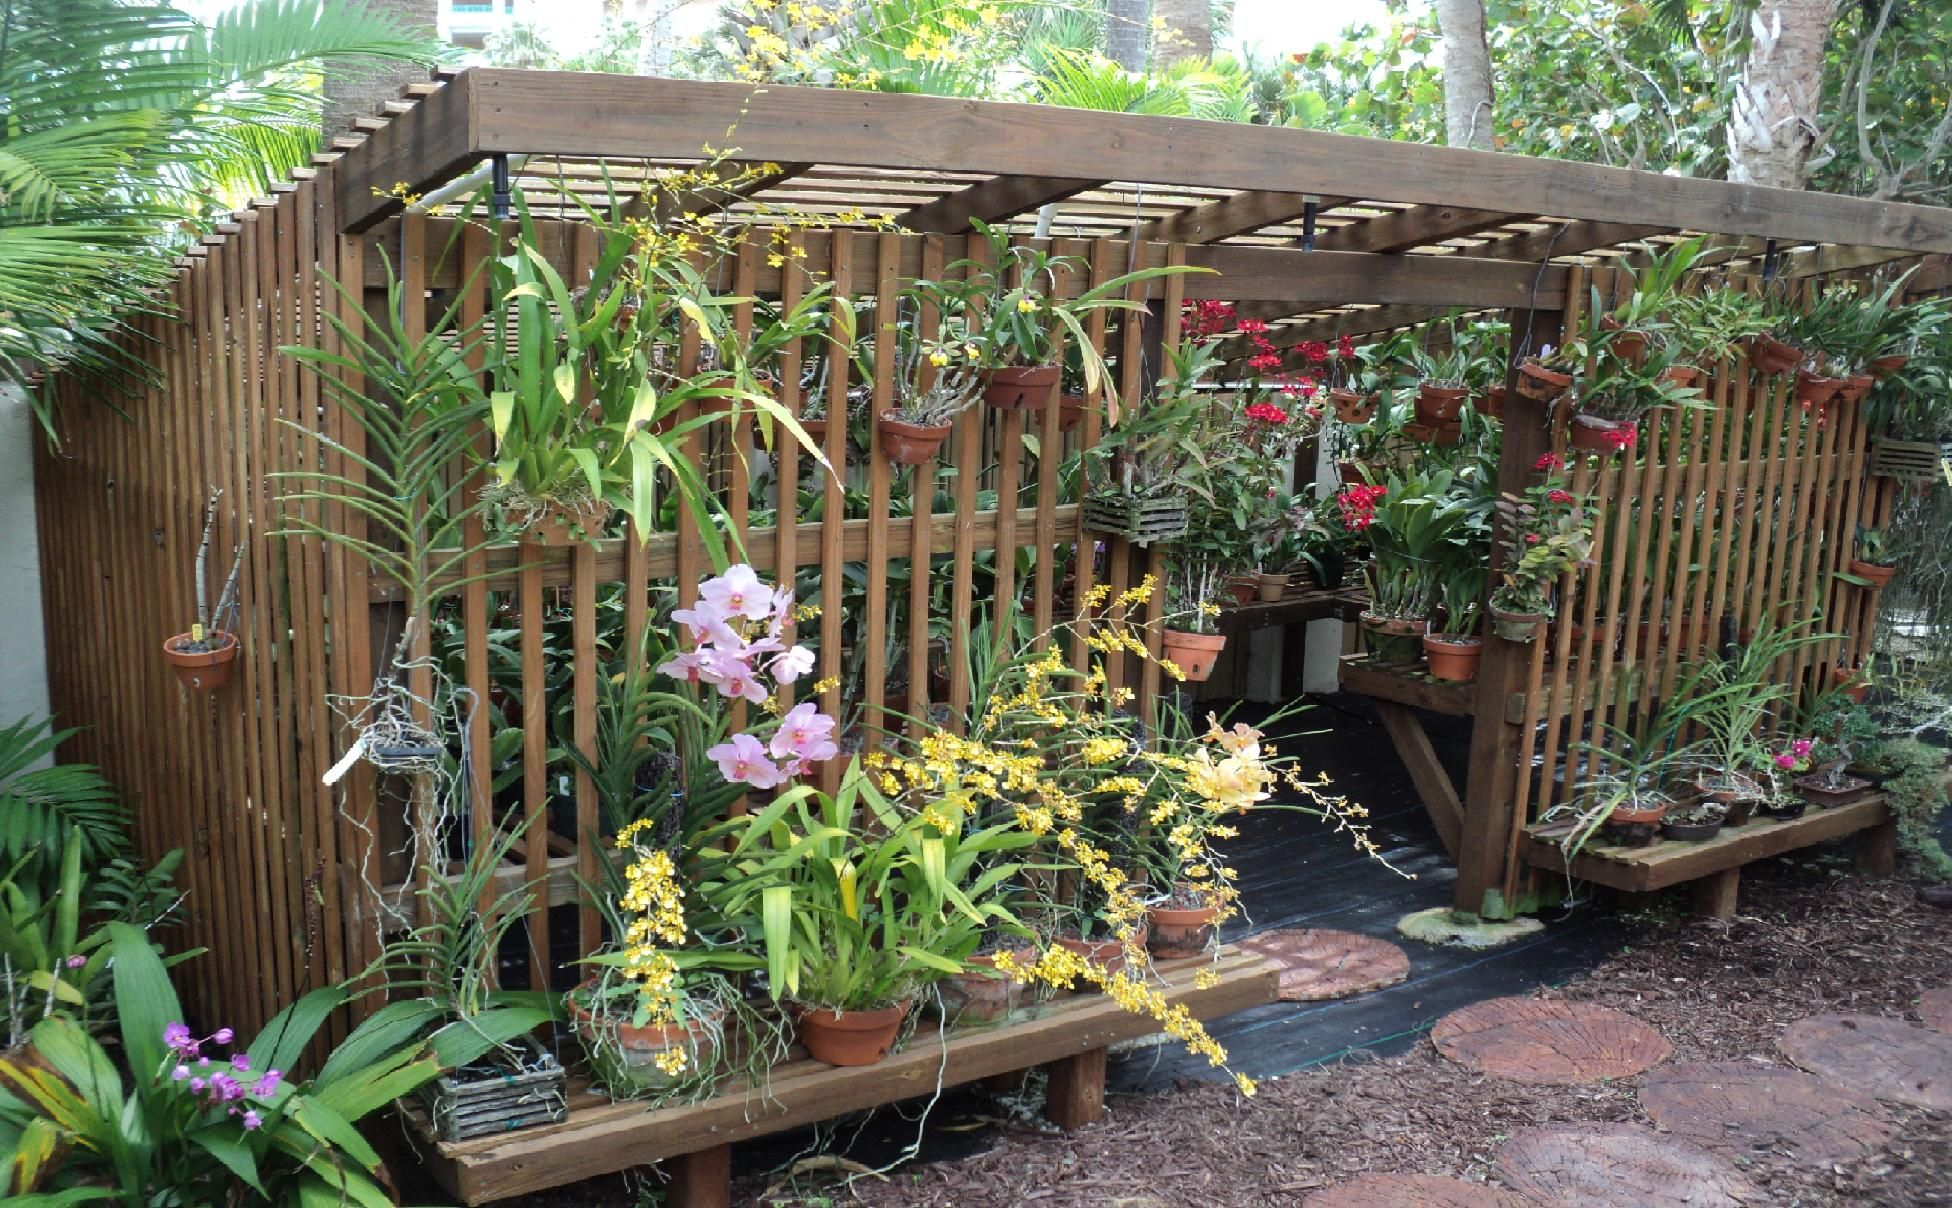 How To Build An Orchid Lath House Welcome To Chadwick Son Orchids Orchid House Shade House Plants Backyard shade house ideas